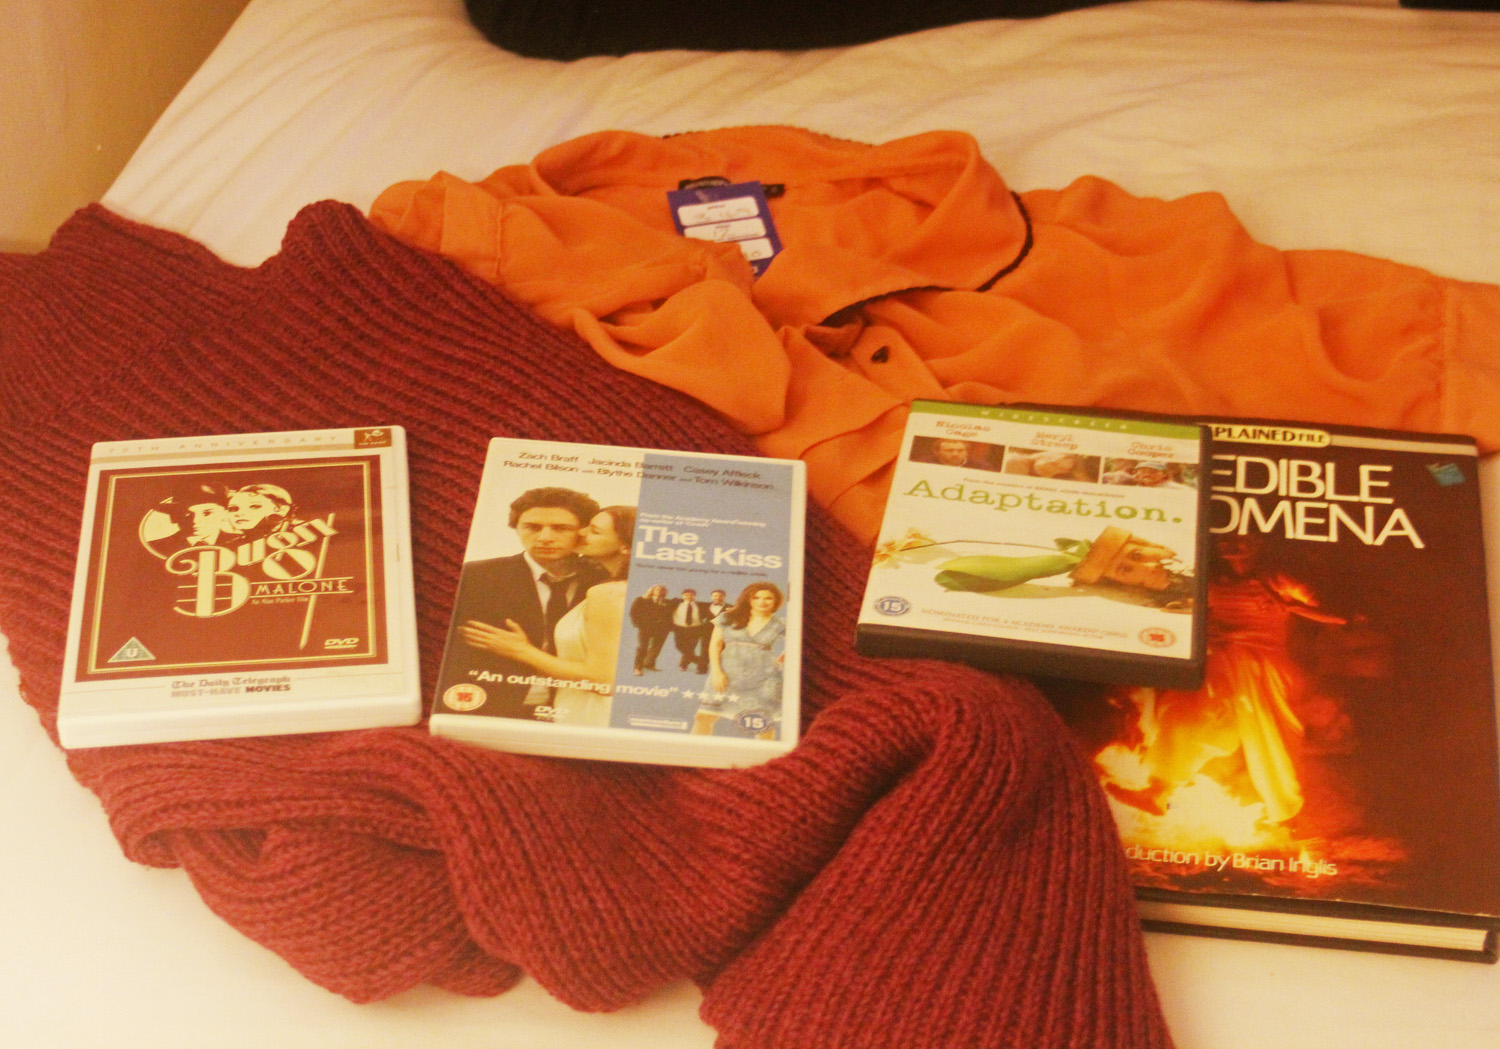 purchases charity shop Kentish Town peach scalloped blouse black edging black buttons DVD The last kiss bugsy malone weird book purple pink turtleneck turtle neck polo neck